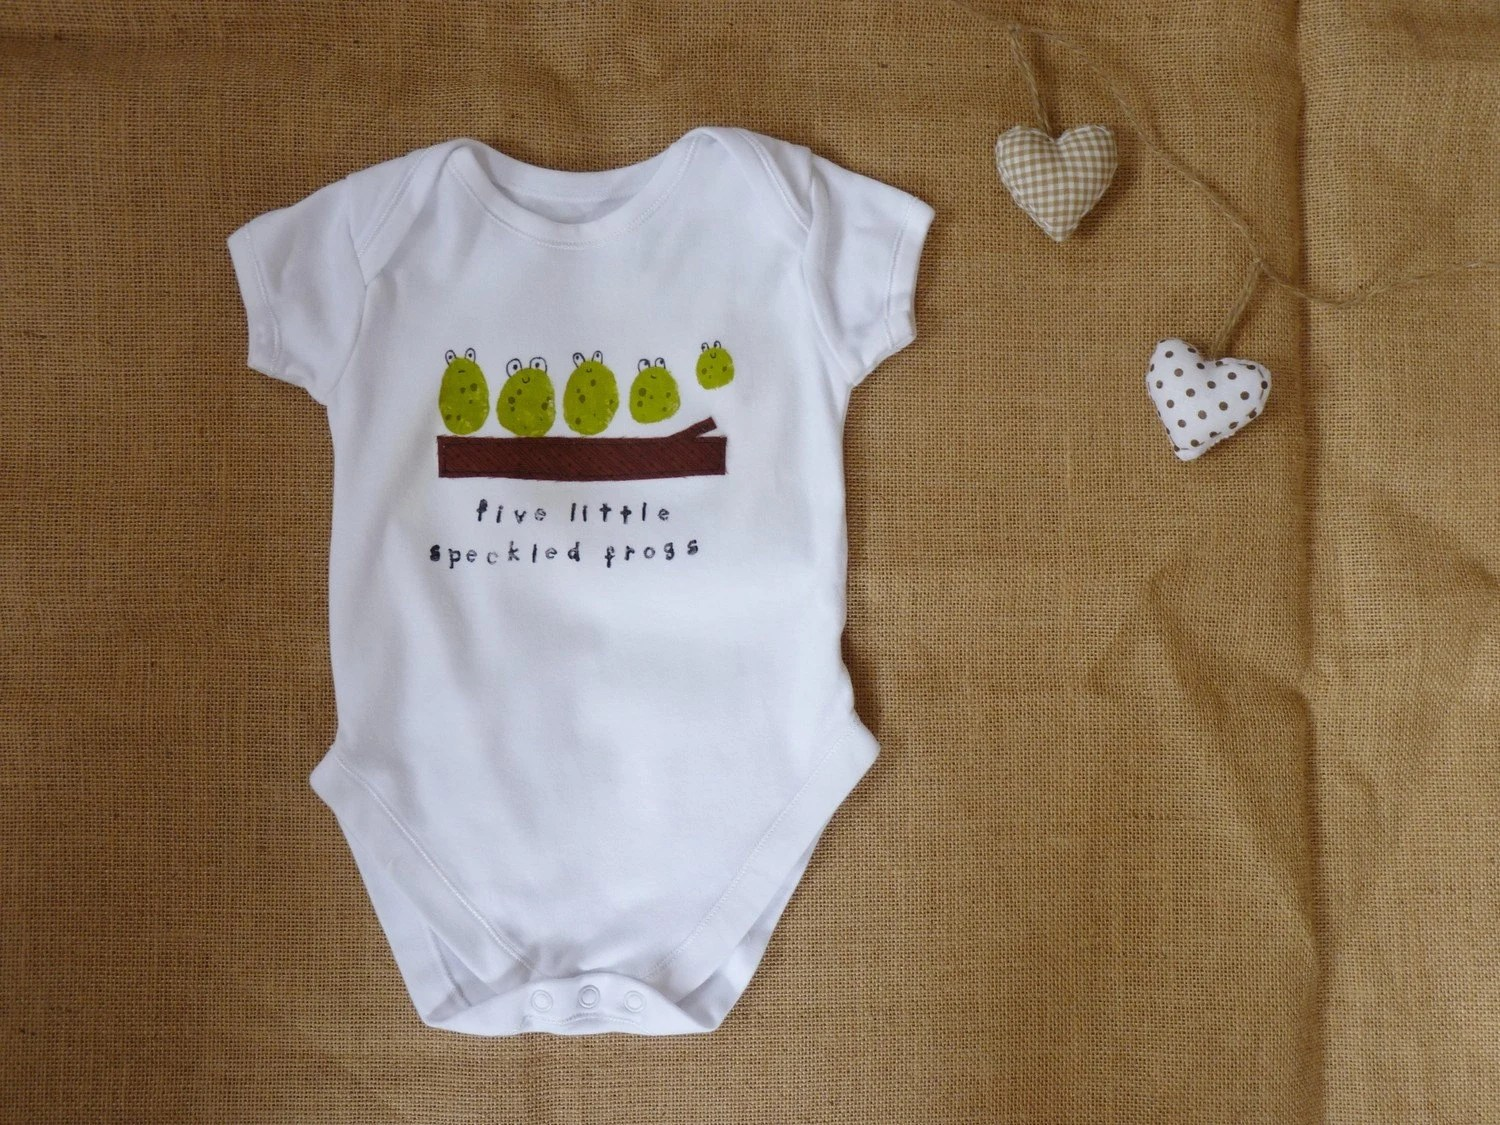 Five little speckled frogs onesie. Newborn - 2T. F r e e  S h i p p i n g